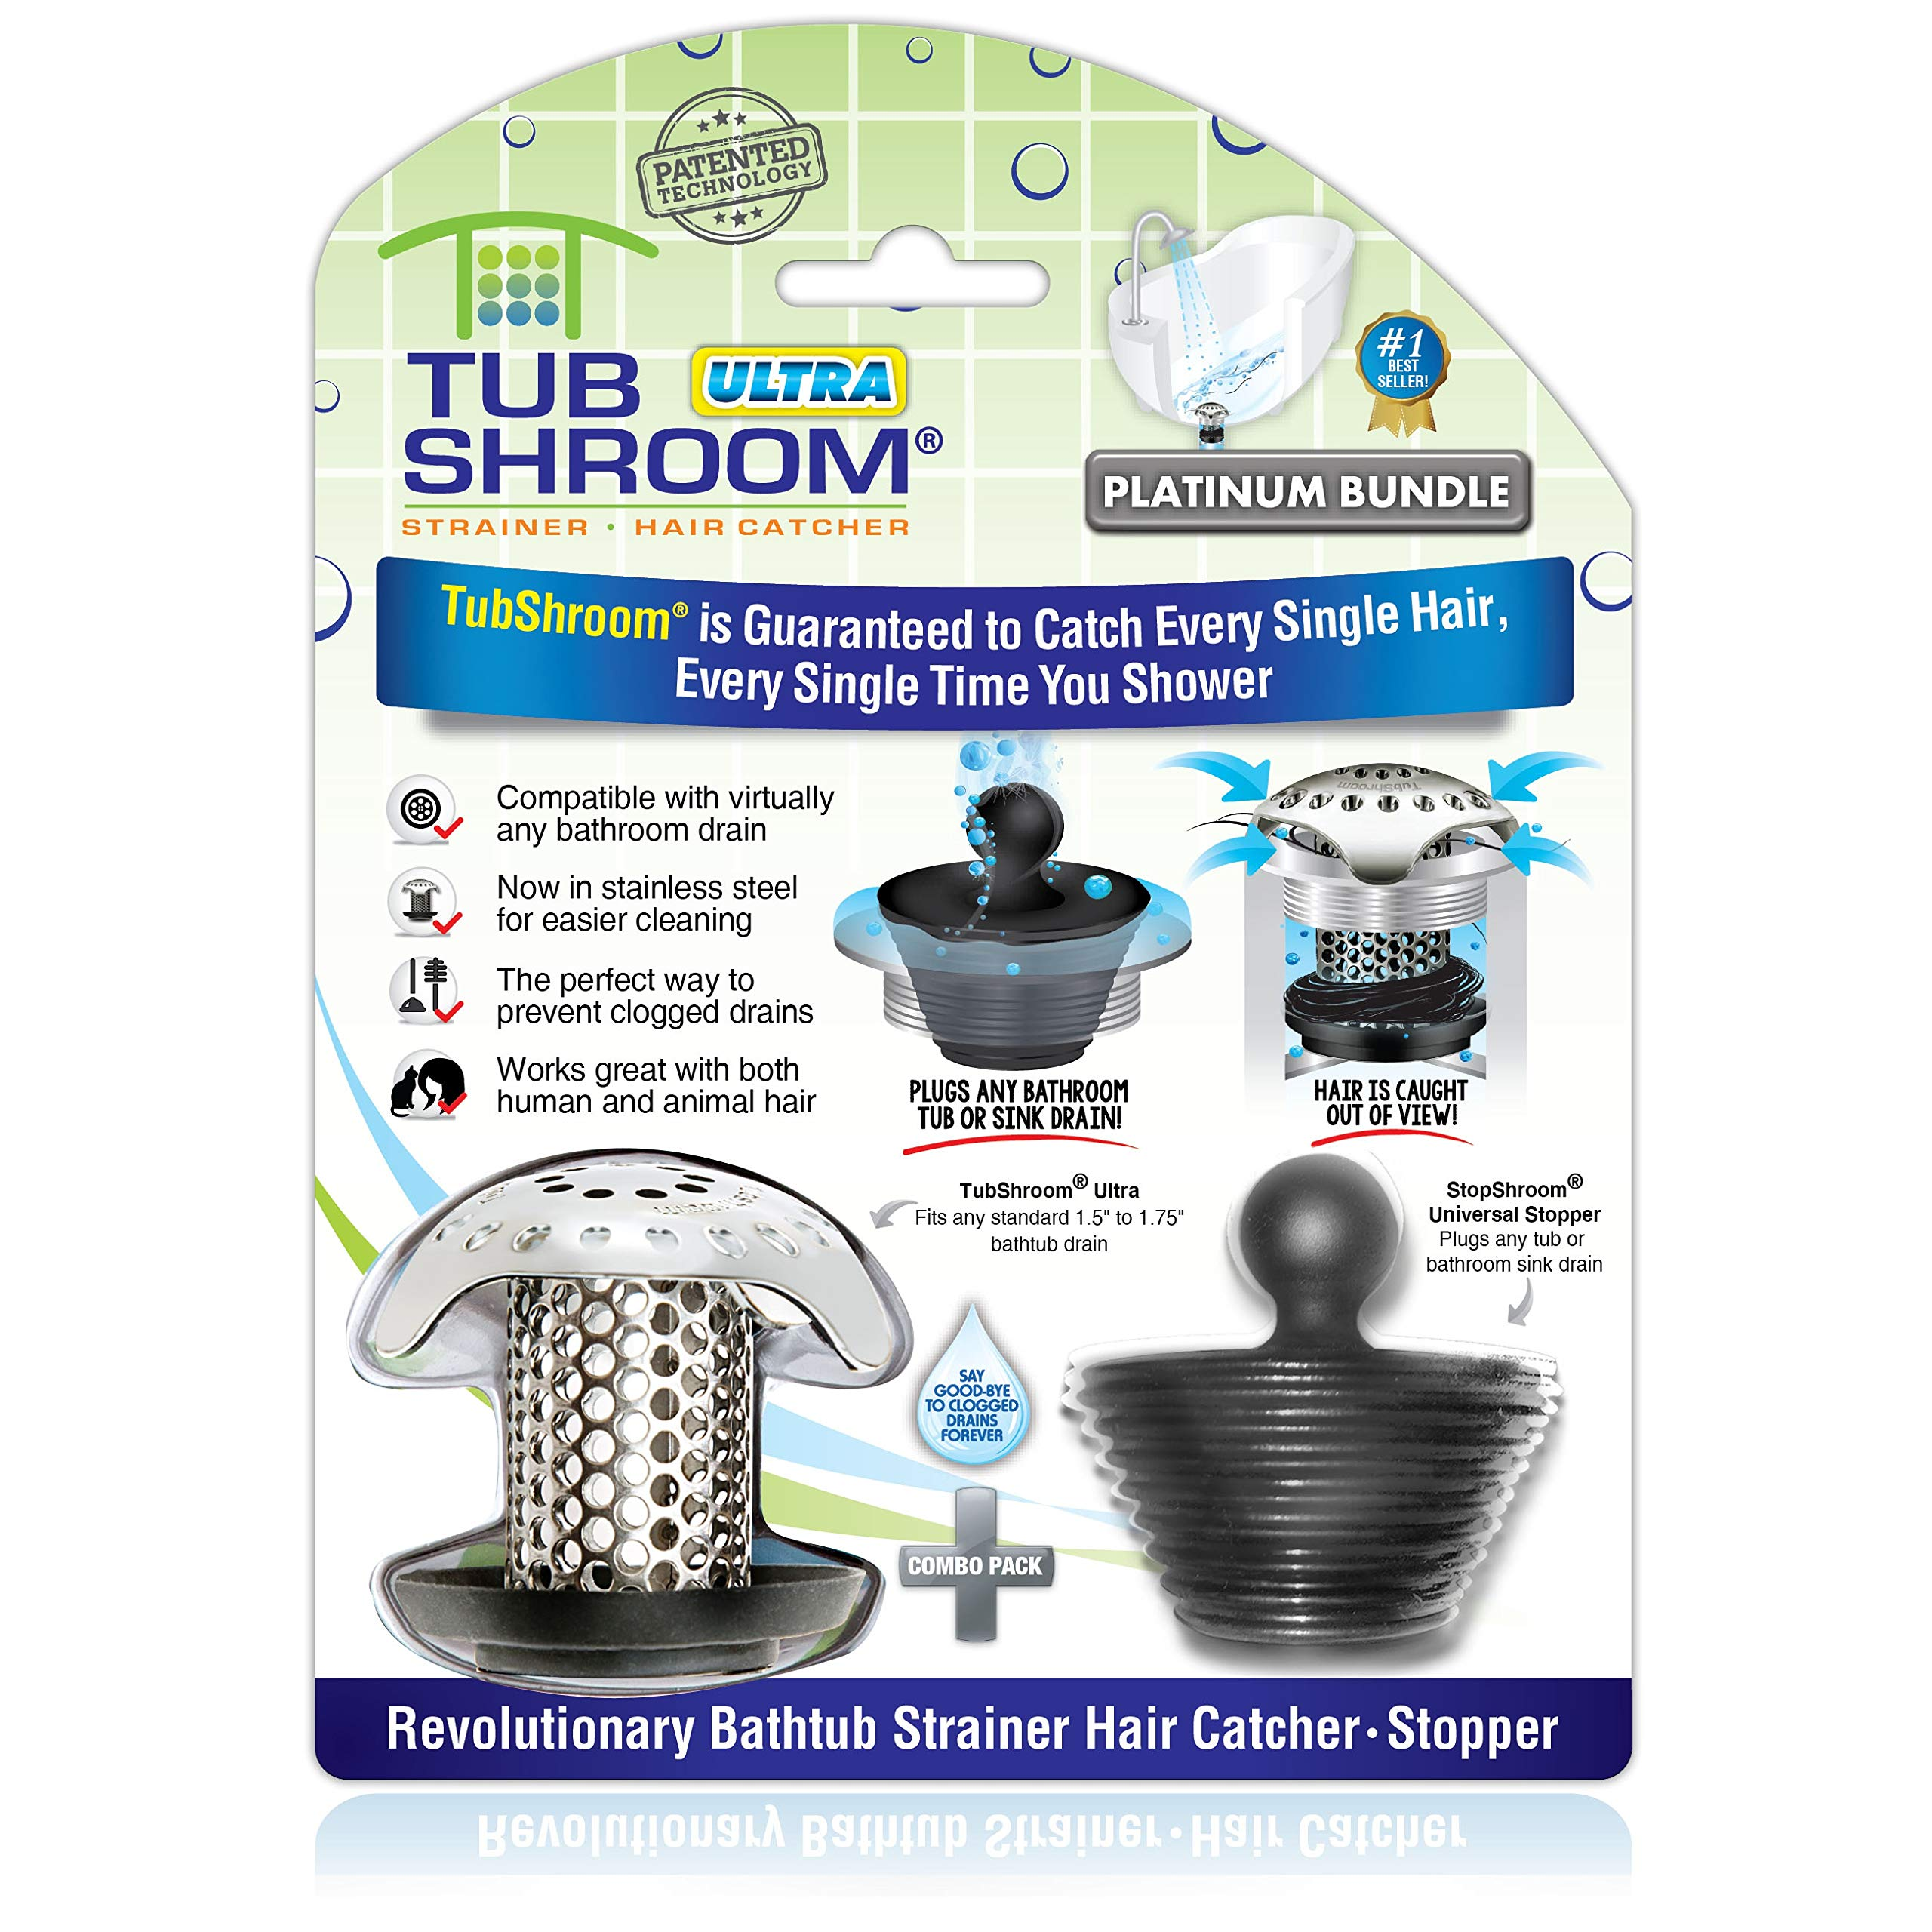 TubShroom Ultra Revolutionary Bath Tub Drain Protector Hair Catcher/Strainer/Snare Stainless Steel product